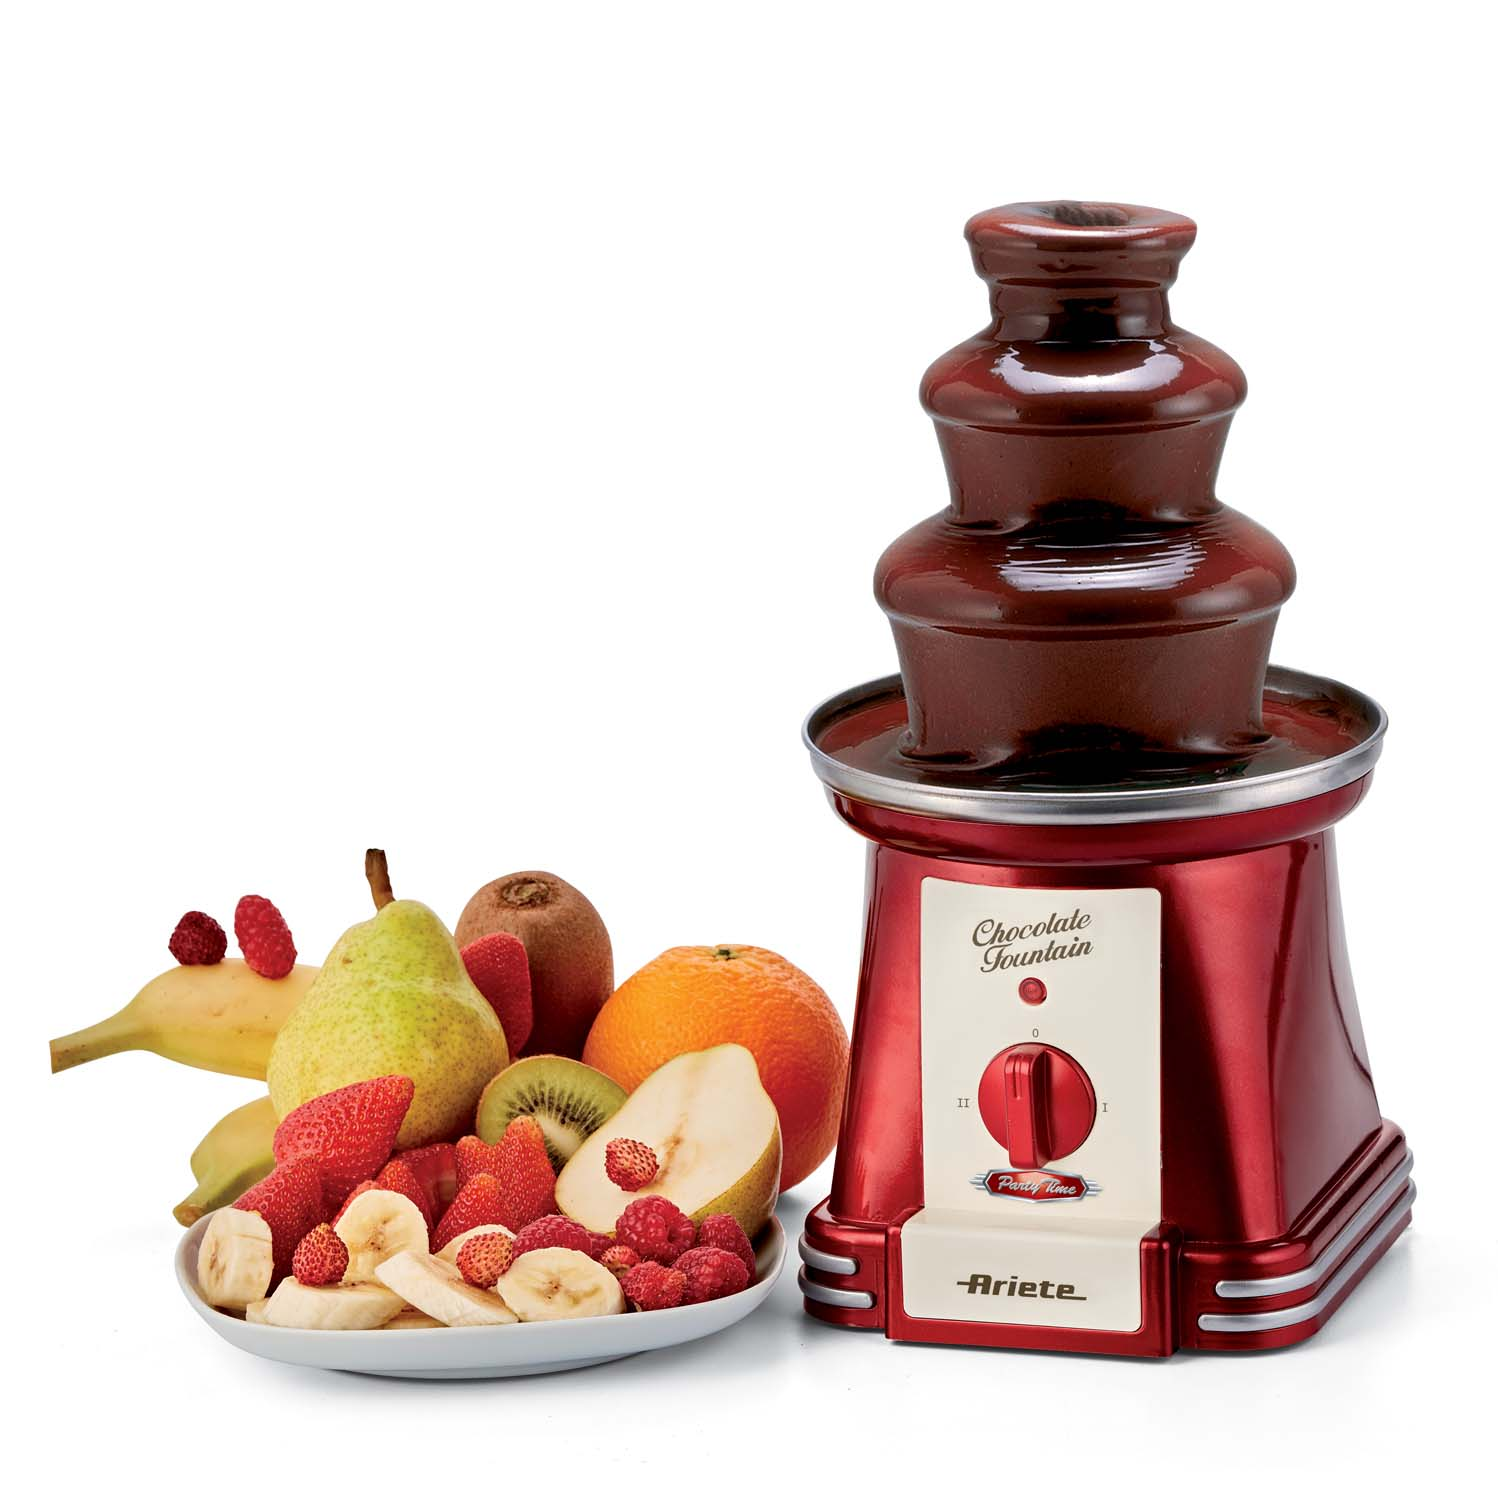 Ariete Chocolate Fountain